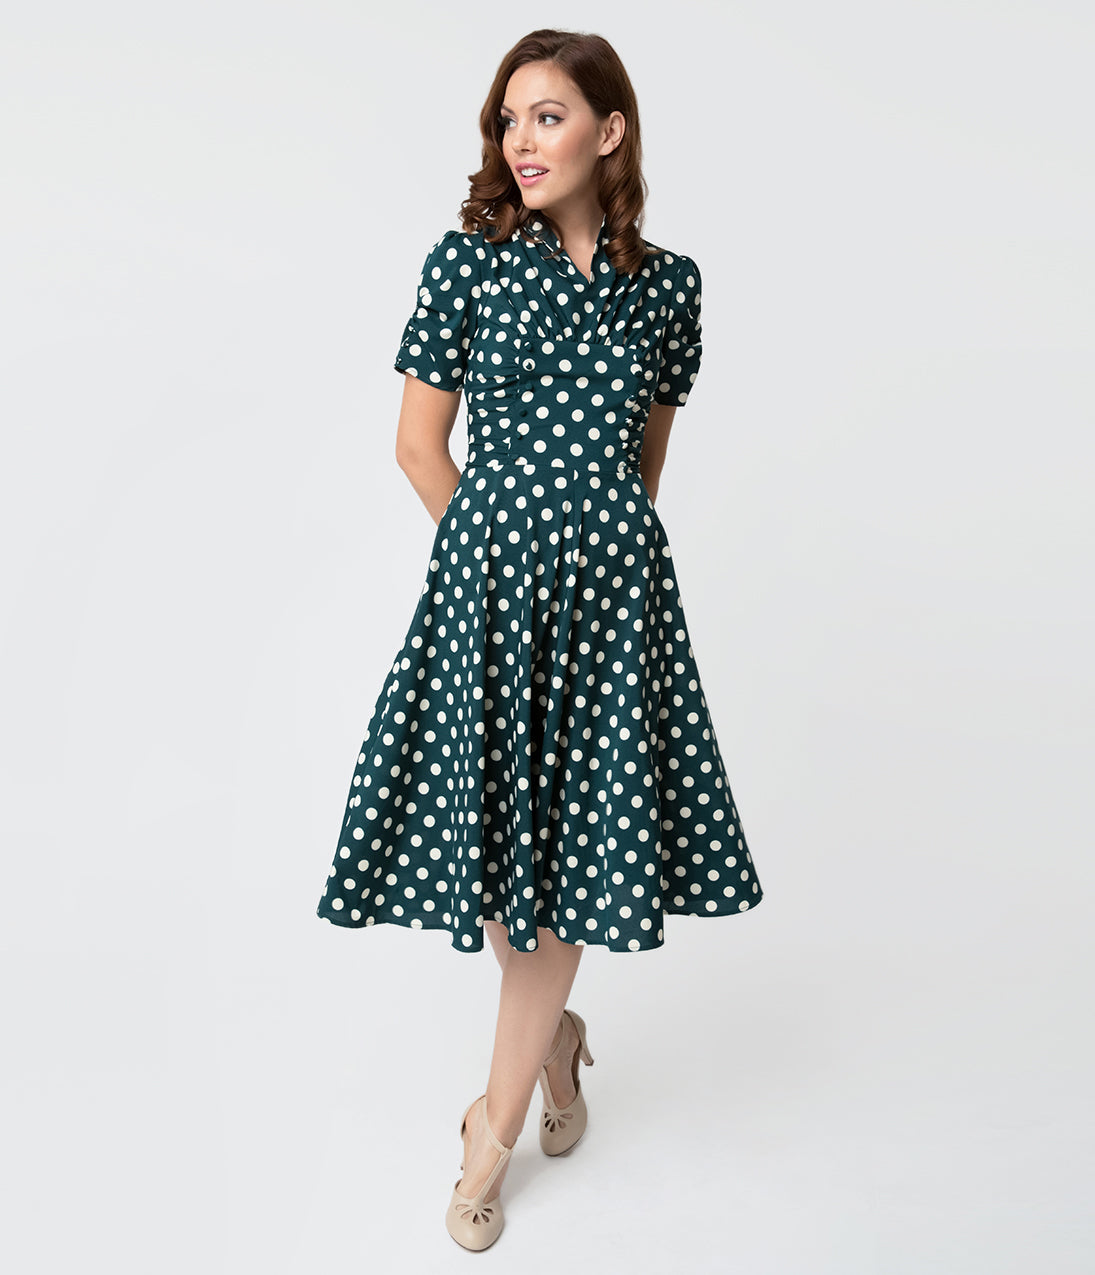 Vintage Polka Dot Dresses – 50s Spotty and Ditsy Prints Unique Vintage 1940S Style Emerald Green  White Dot Camilla Midi Dress $88.00 AT vintagedancer.com